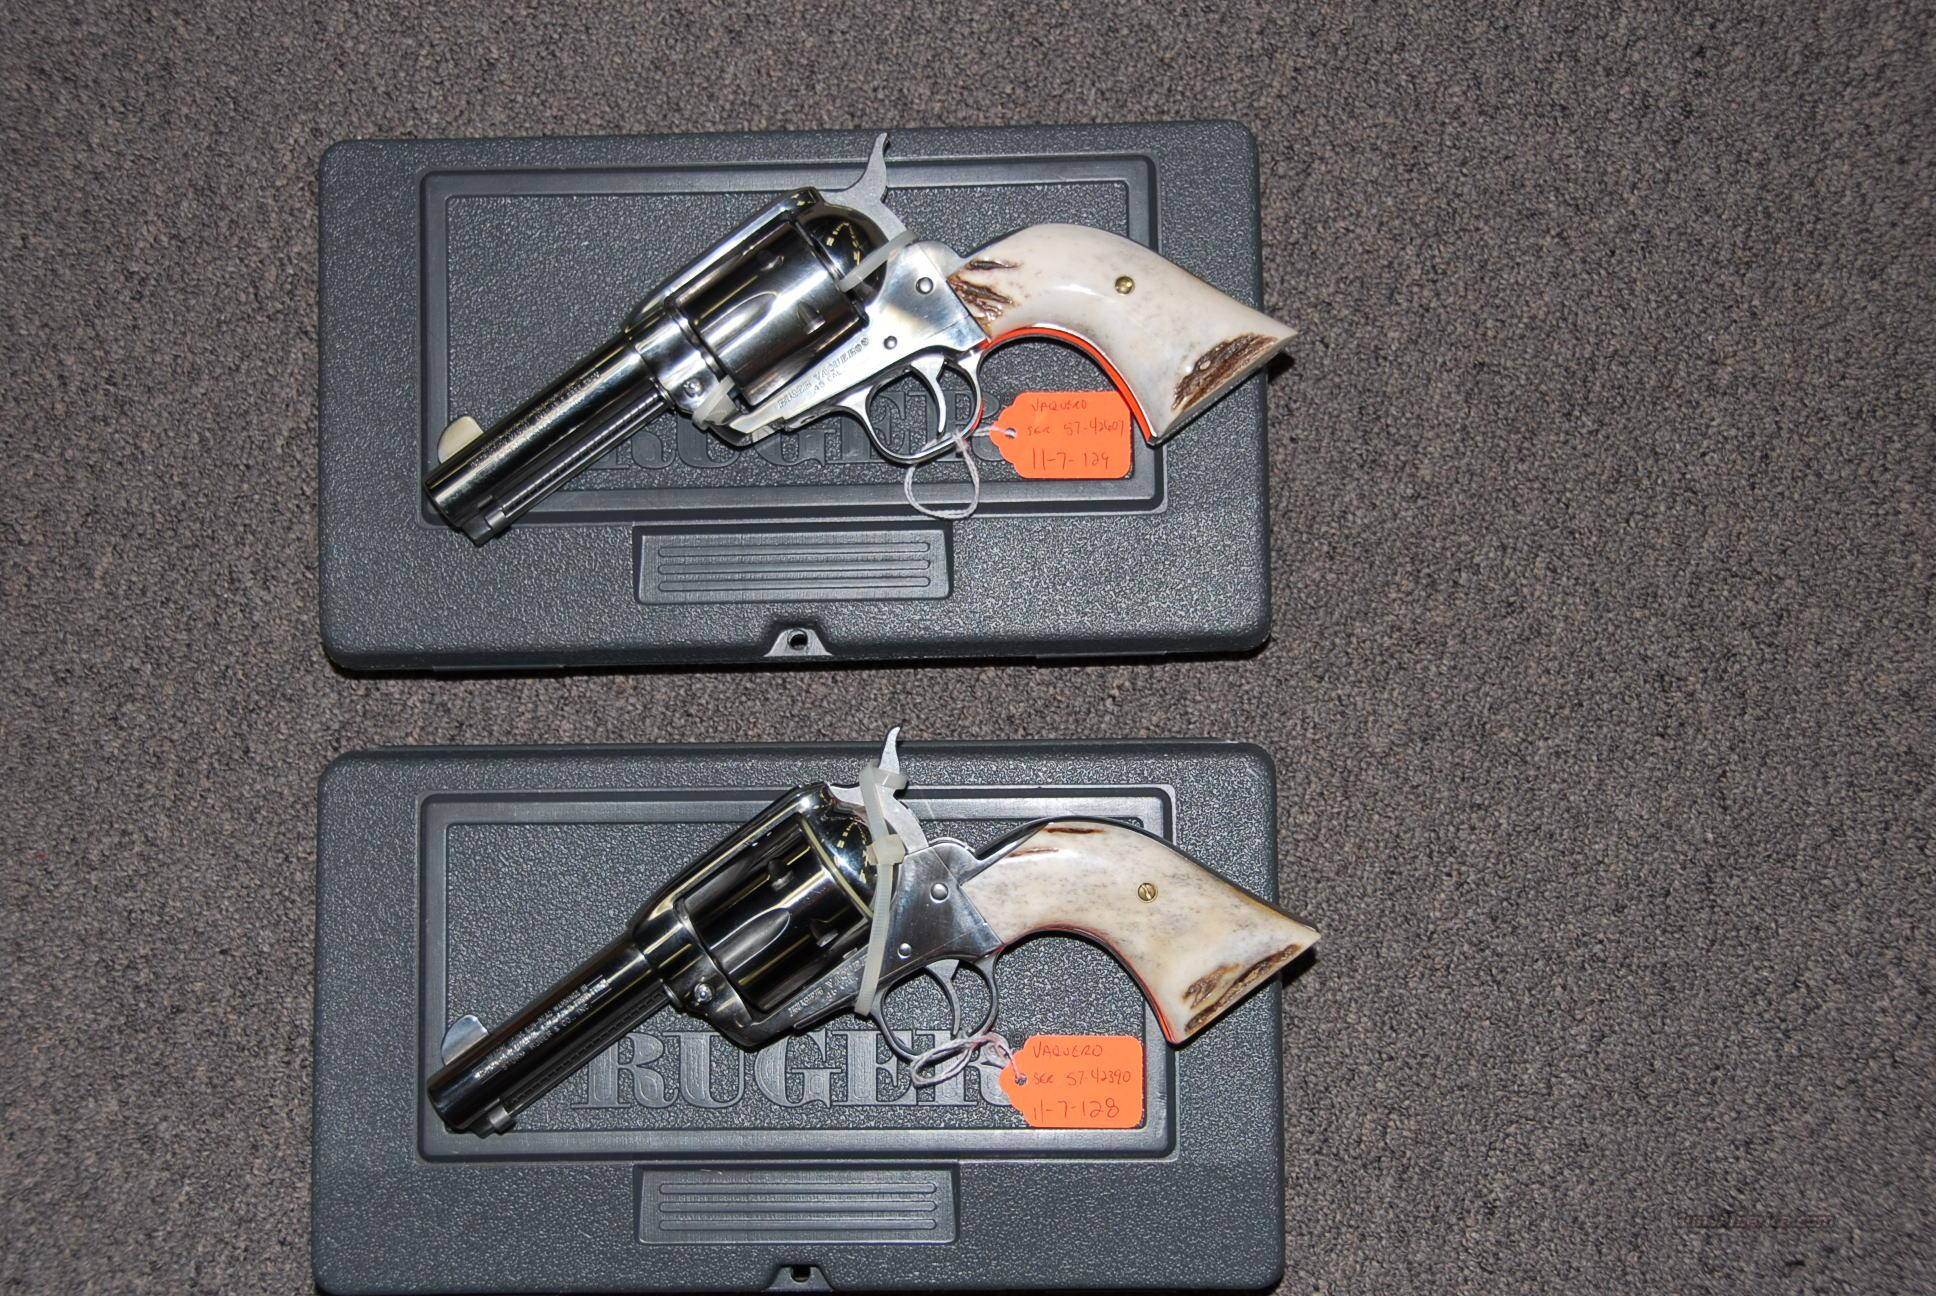 Special Vaqueros, 3-1/2 inch w/Stag grips...  Guns > Pistols > Ruger Single Action Revolvers > Cowboy Action